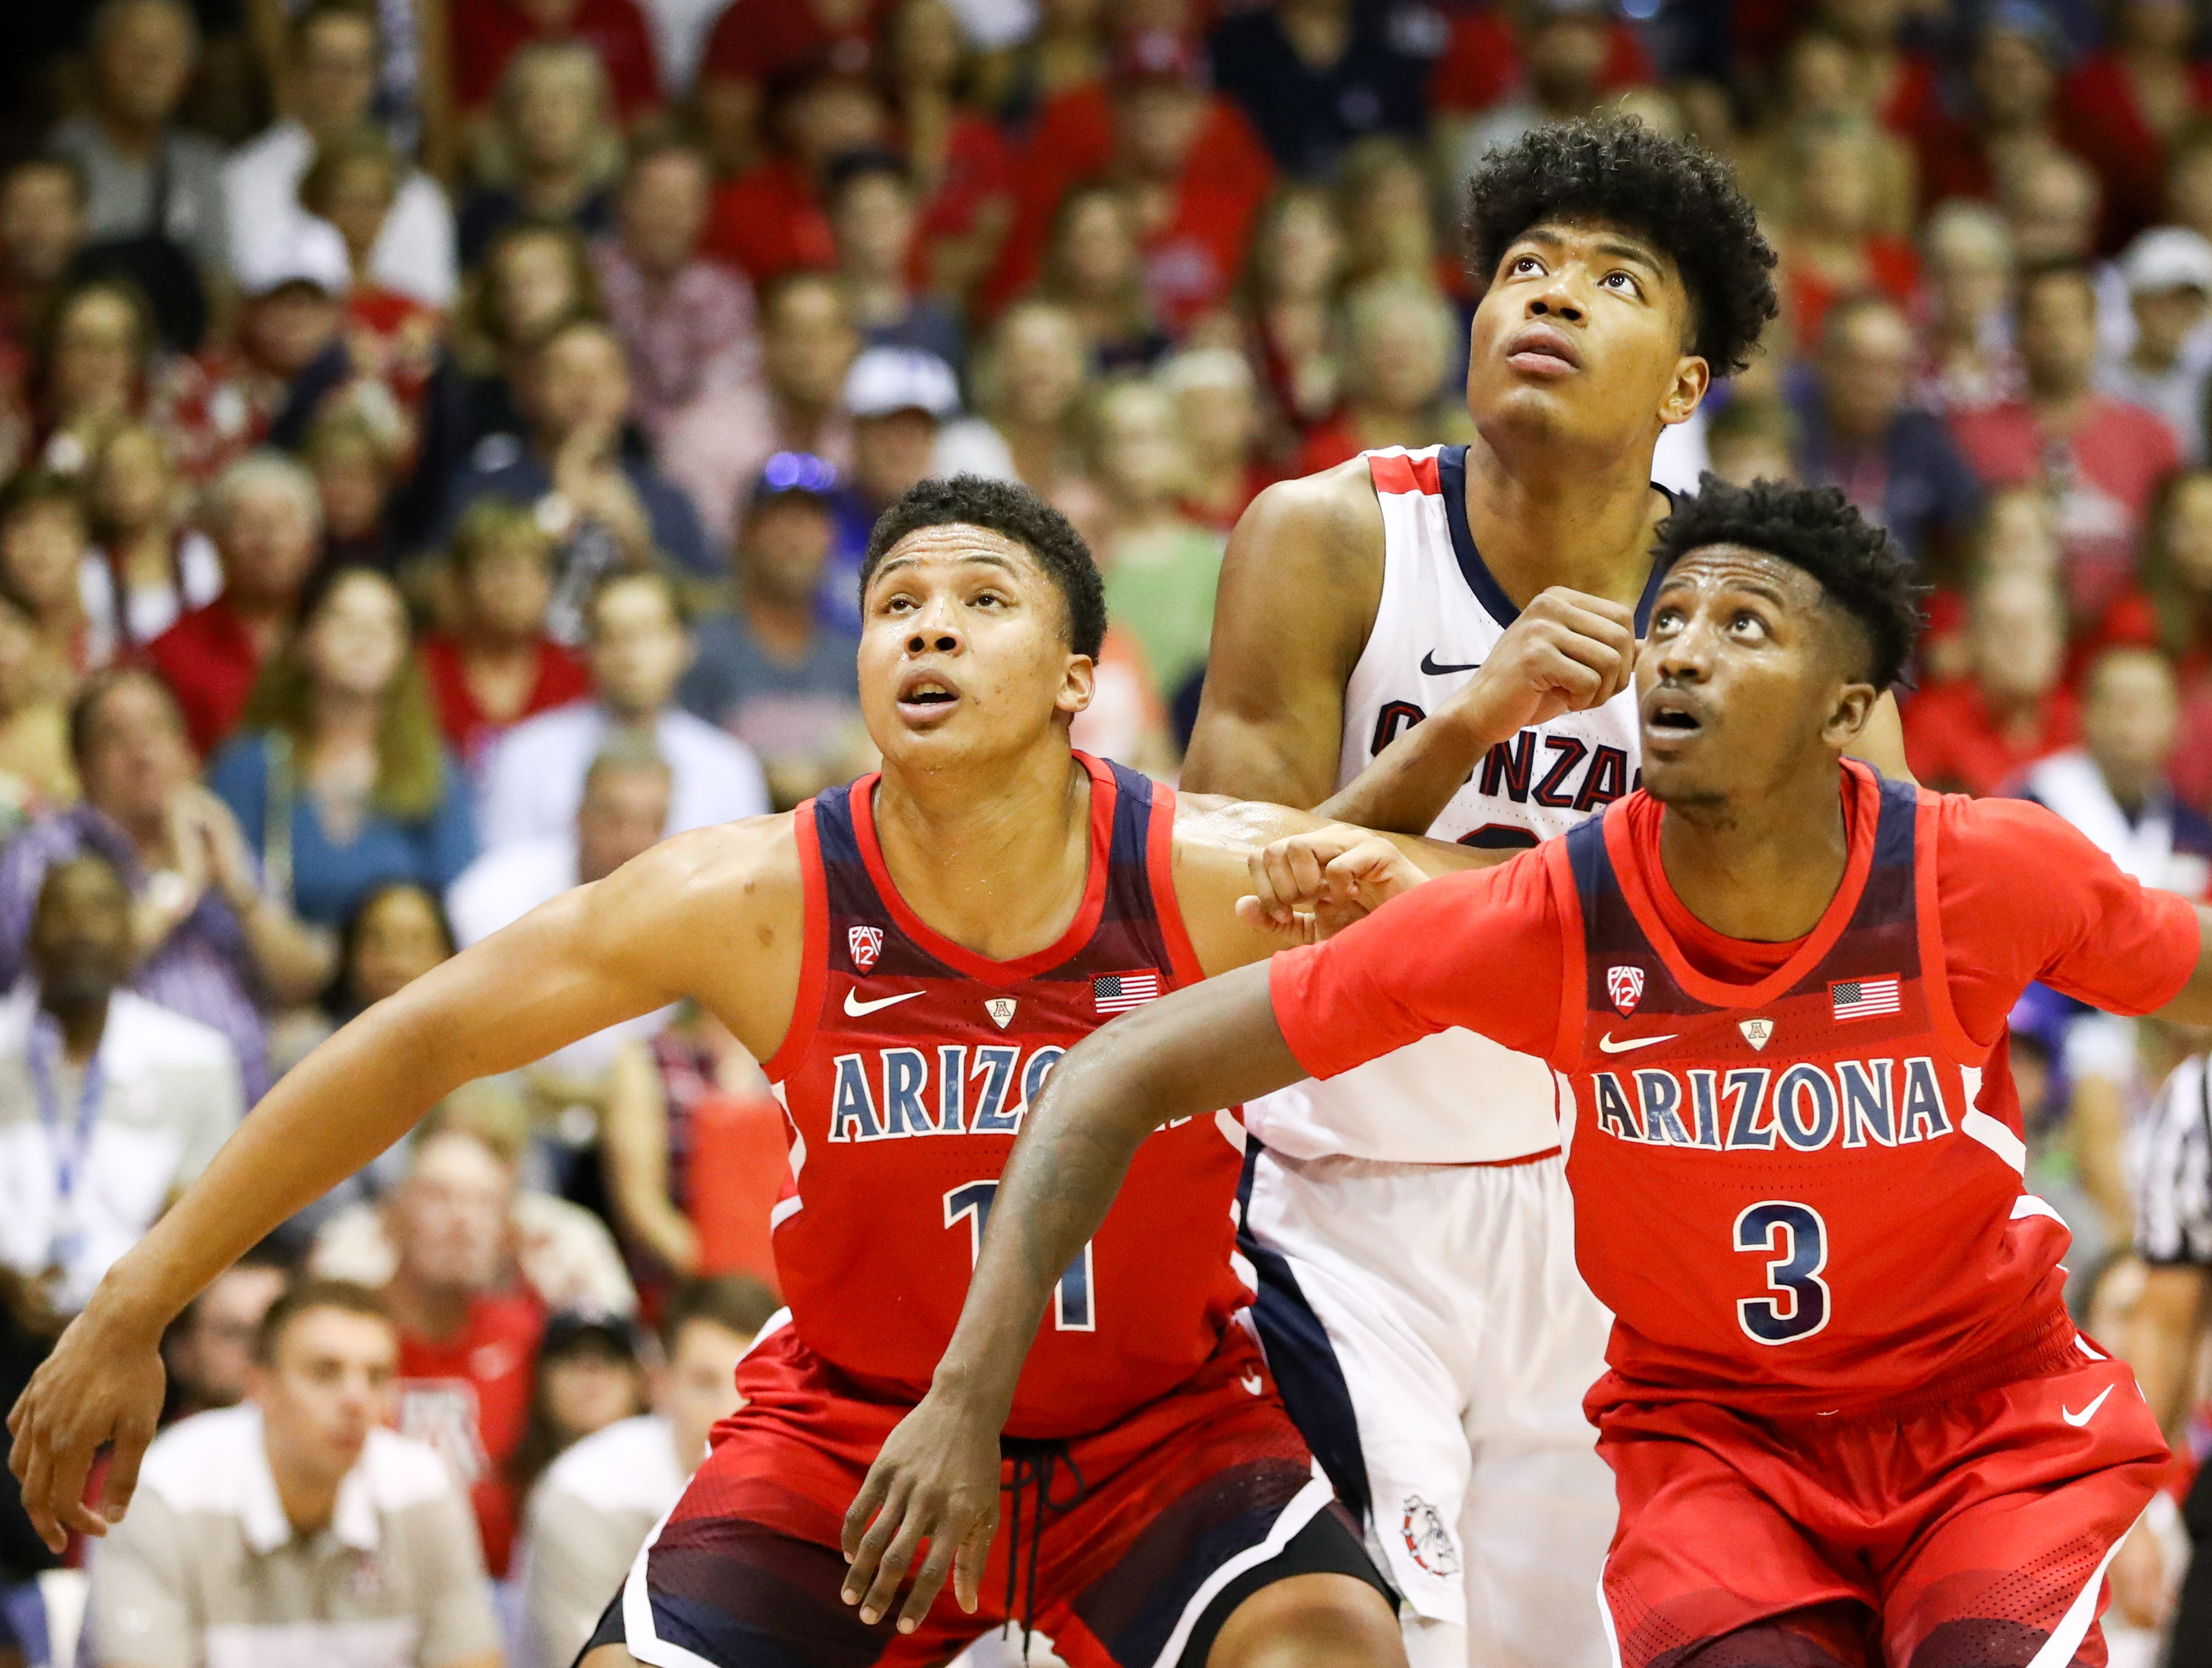 Ira Lee and Dylan Smith of the Arizona Wildcats block out Rui Hachimura of the Gonzaga Bulldogs during a free throw attempt during the first half of the game at the Lahaina Civic Center.